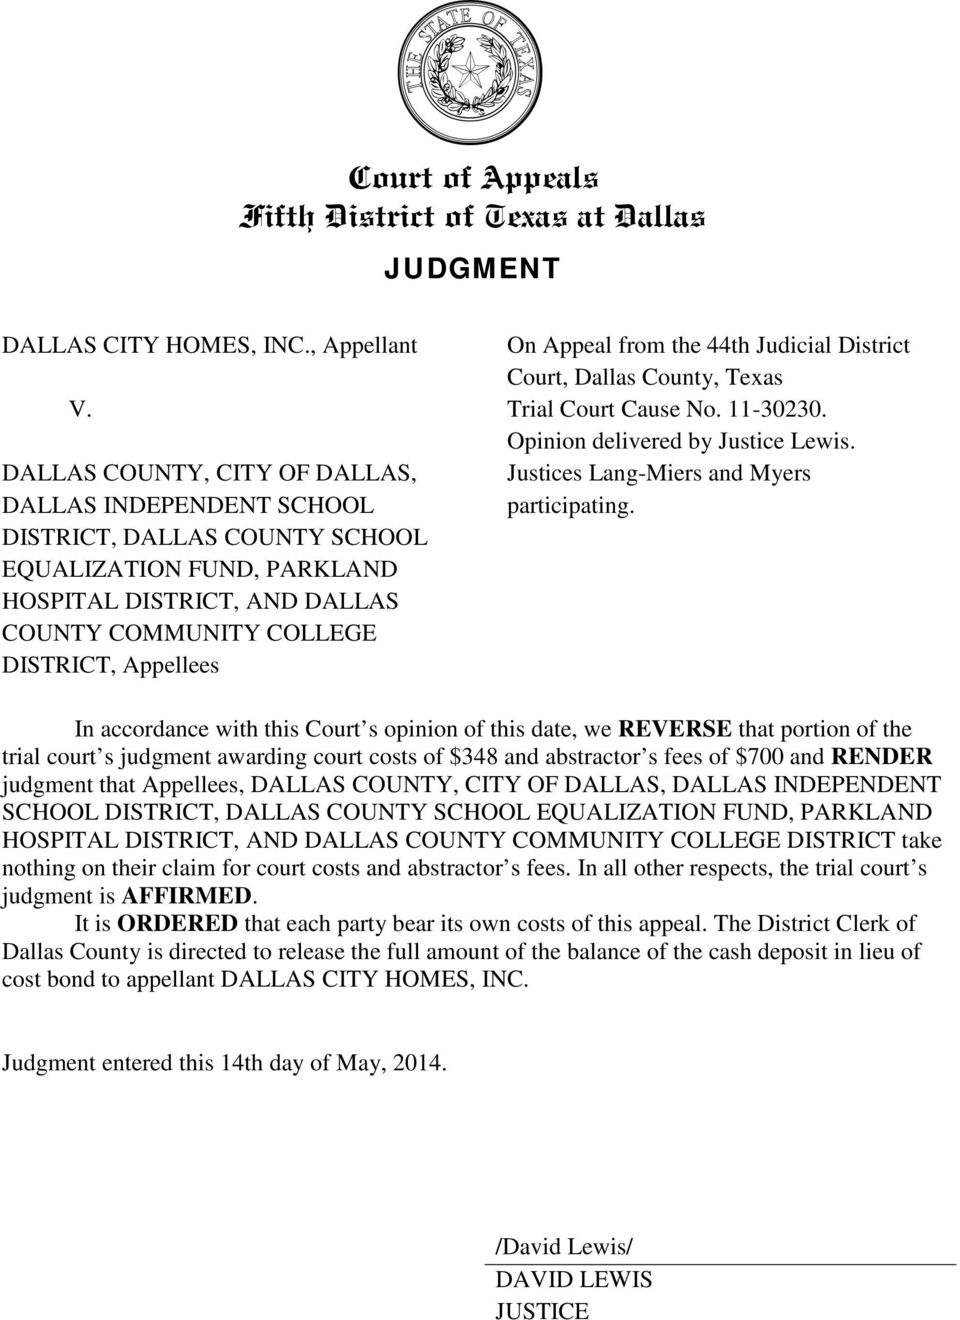 Appeal from the 44th Judicial District Court, Dallas County, Texas Trial Court Cause No. 11-30230. Opinion delivered by Justice Lewis. Justices Lang-Miers and Myers participating.